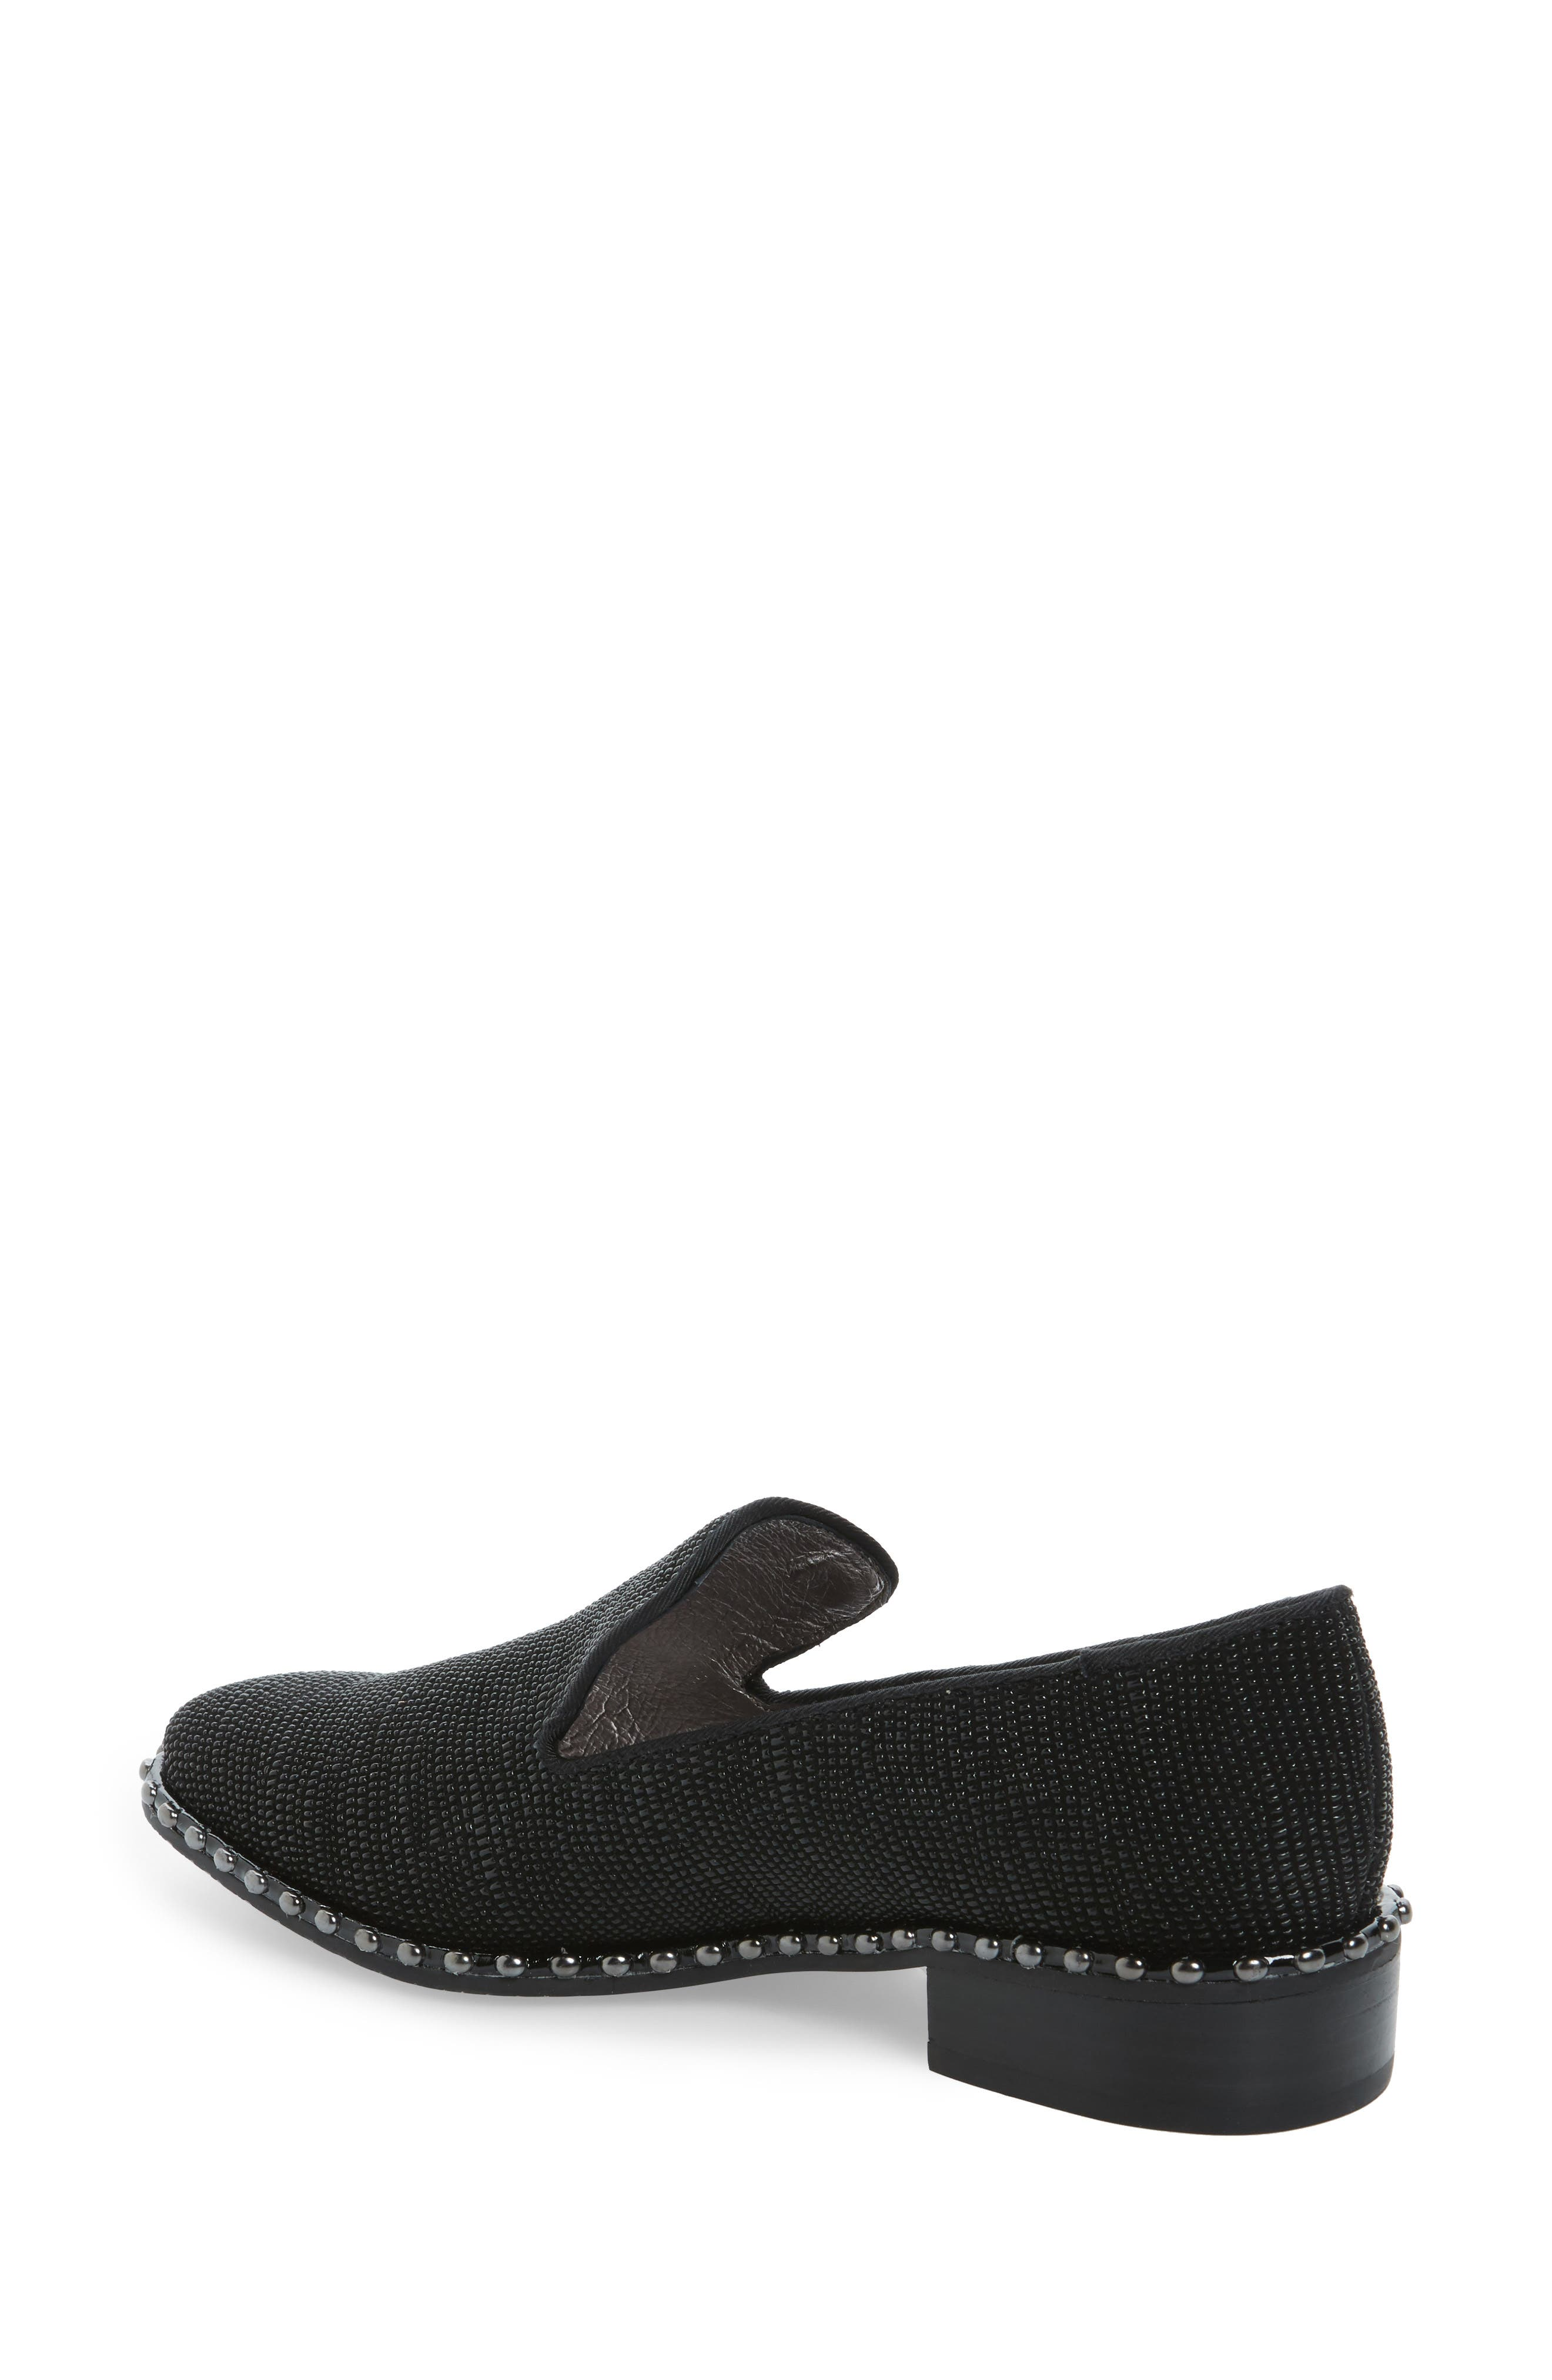 'Prince' Studded Smoking Slipper Flat,                             Alternate thumbnail 2, color,                             011